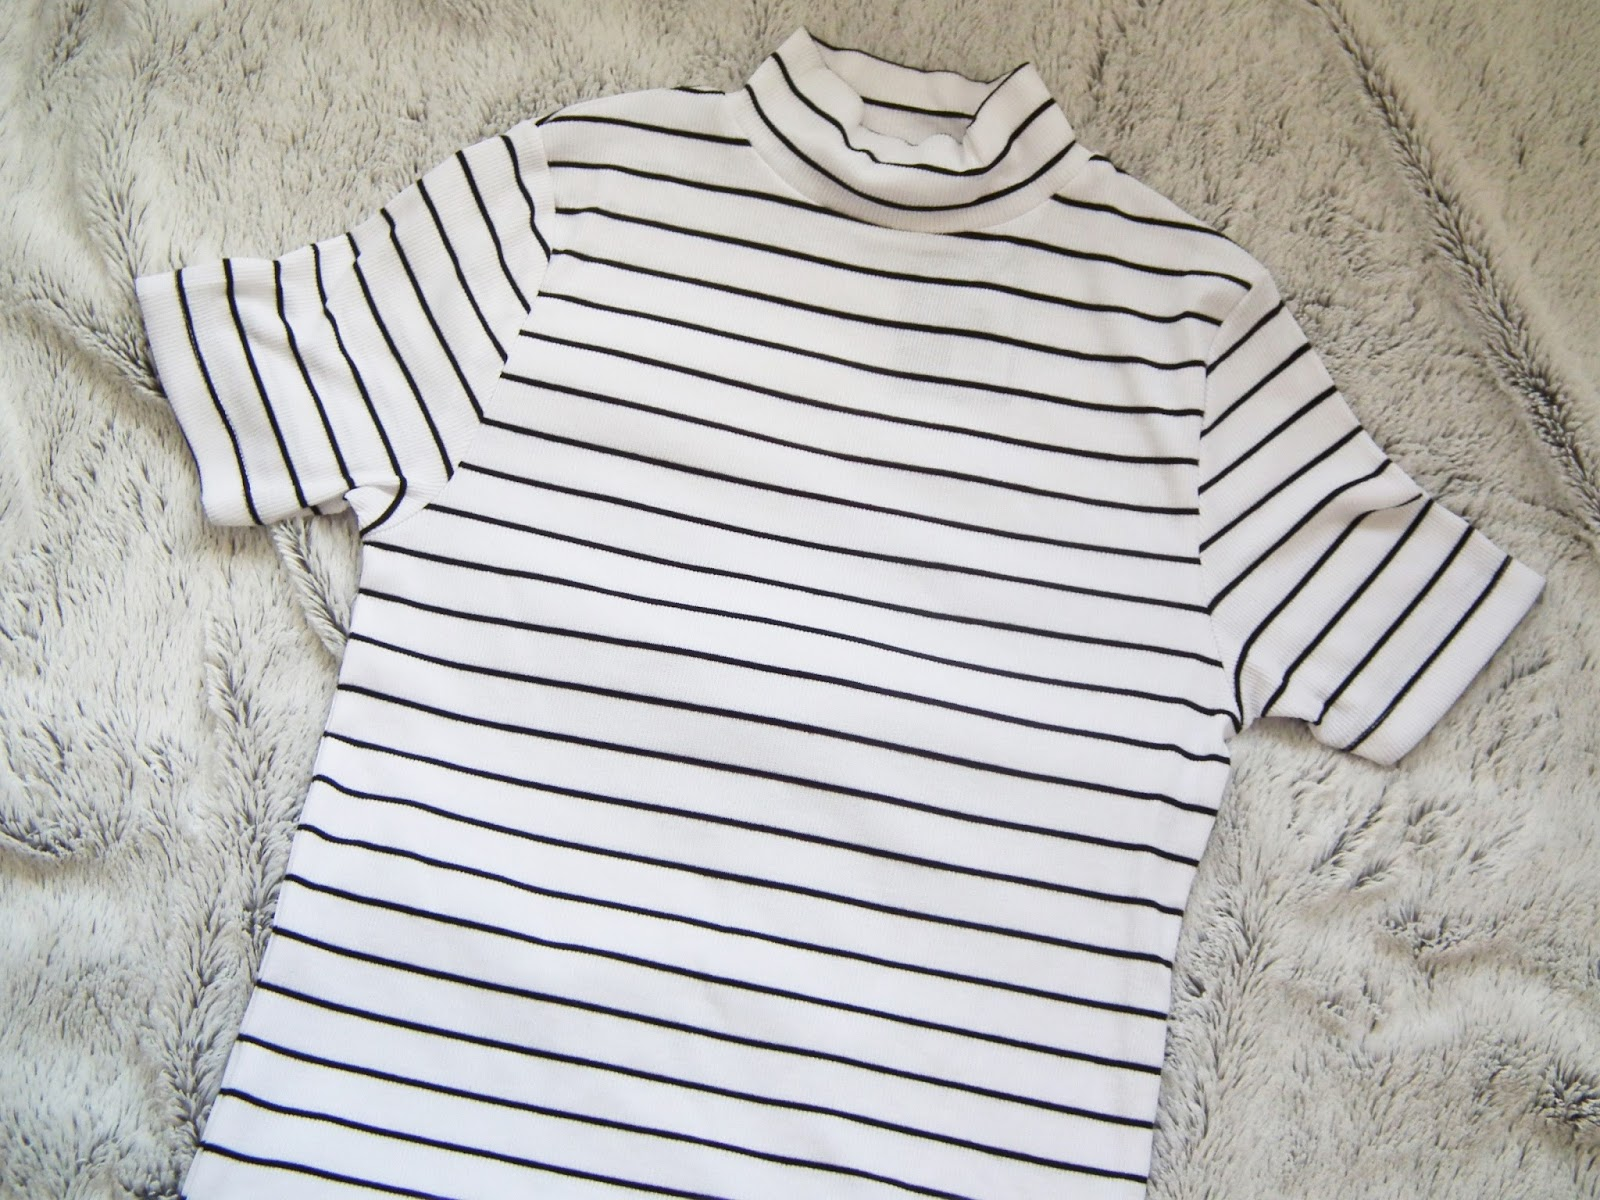 Primark Haul - Spring 2016 White and black striped high neck t-shirt